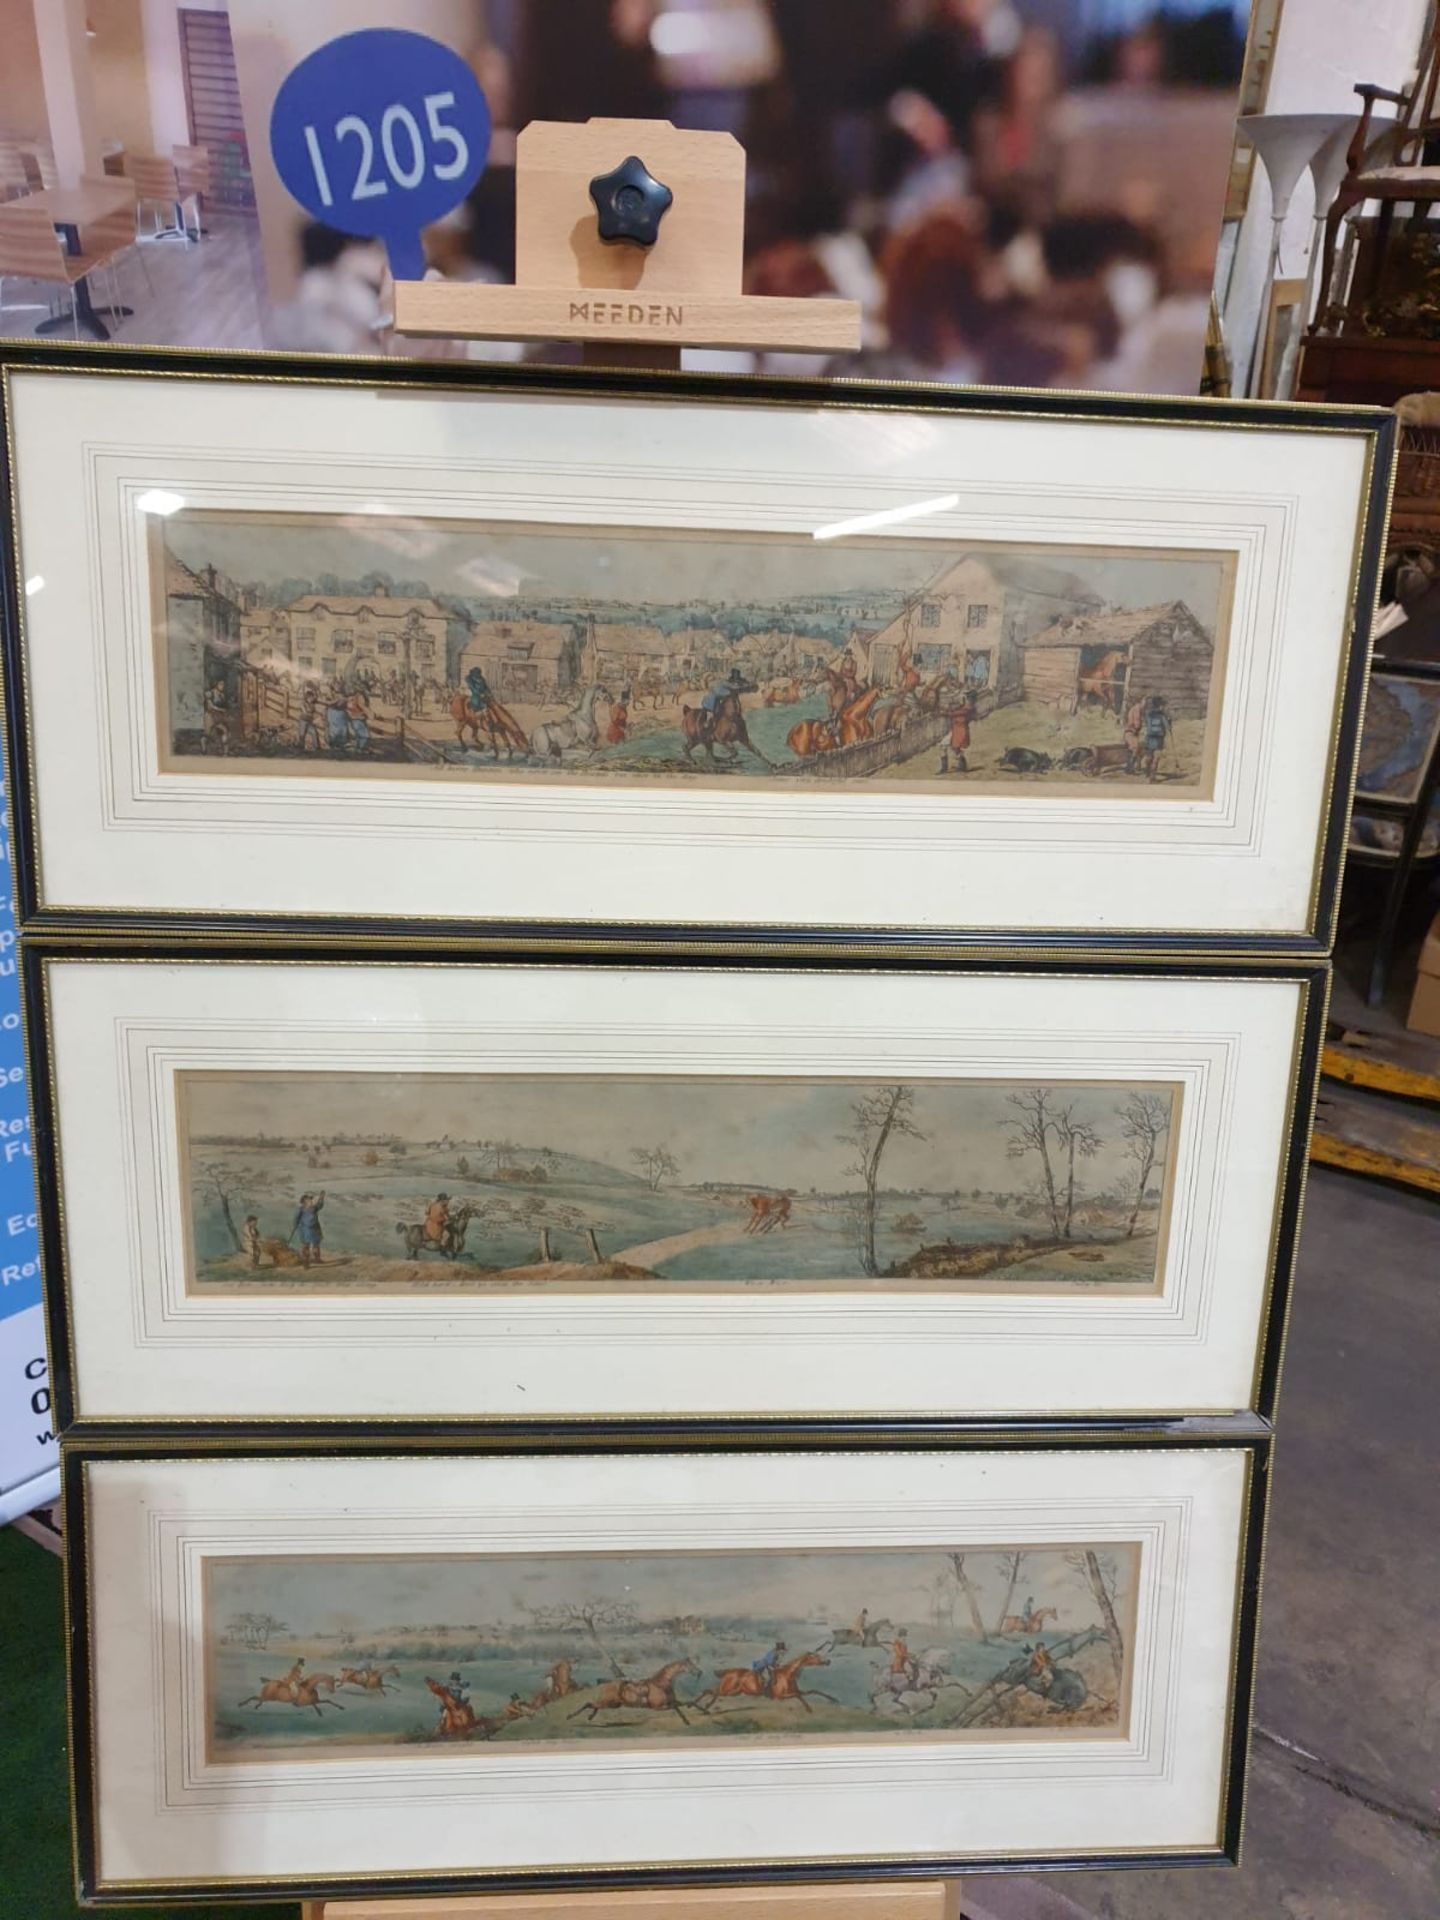 A set of 3 framed coloured panorama Hunters prints titled Stop at anything, Wo-e Wo-e and Some